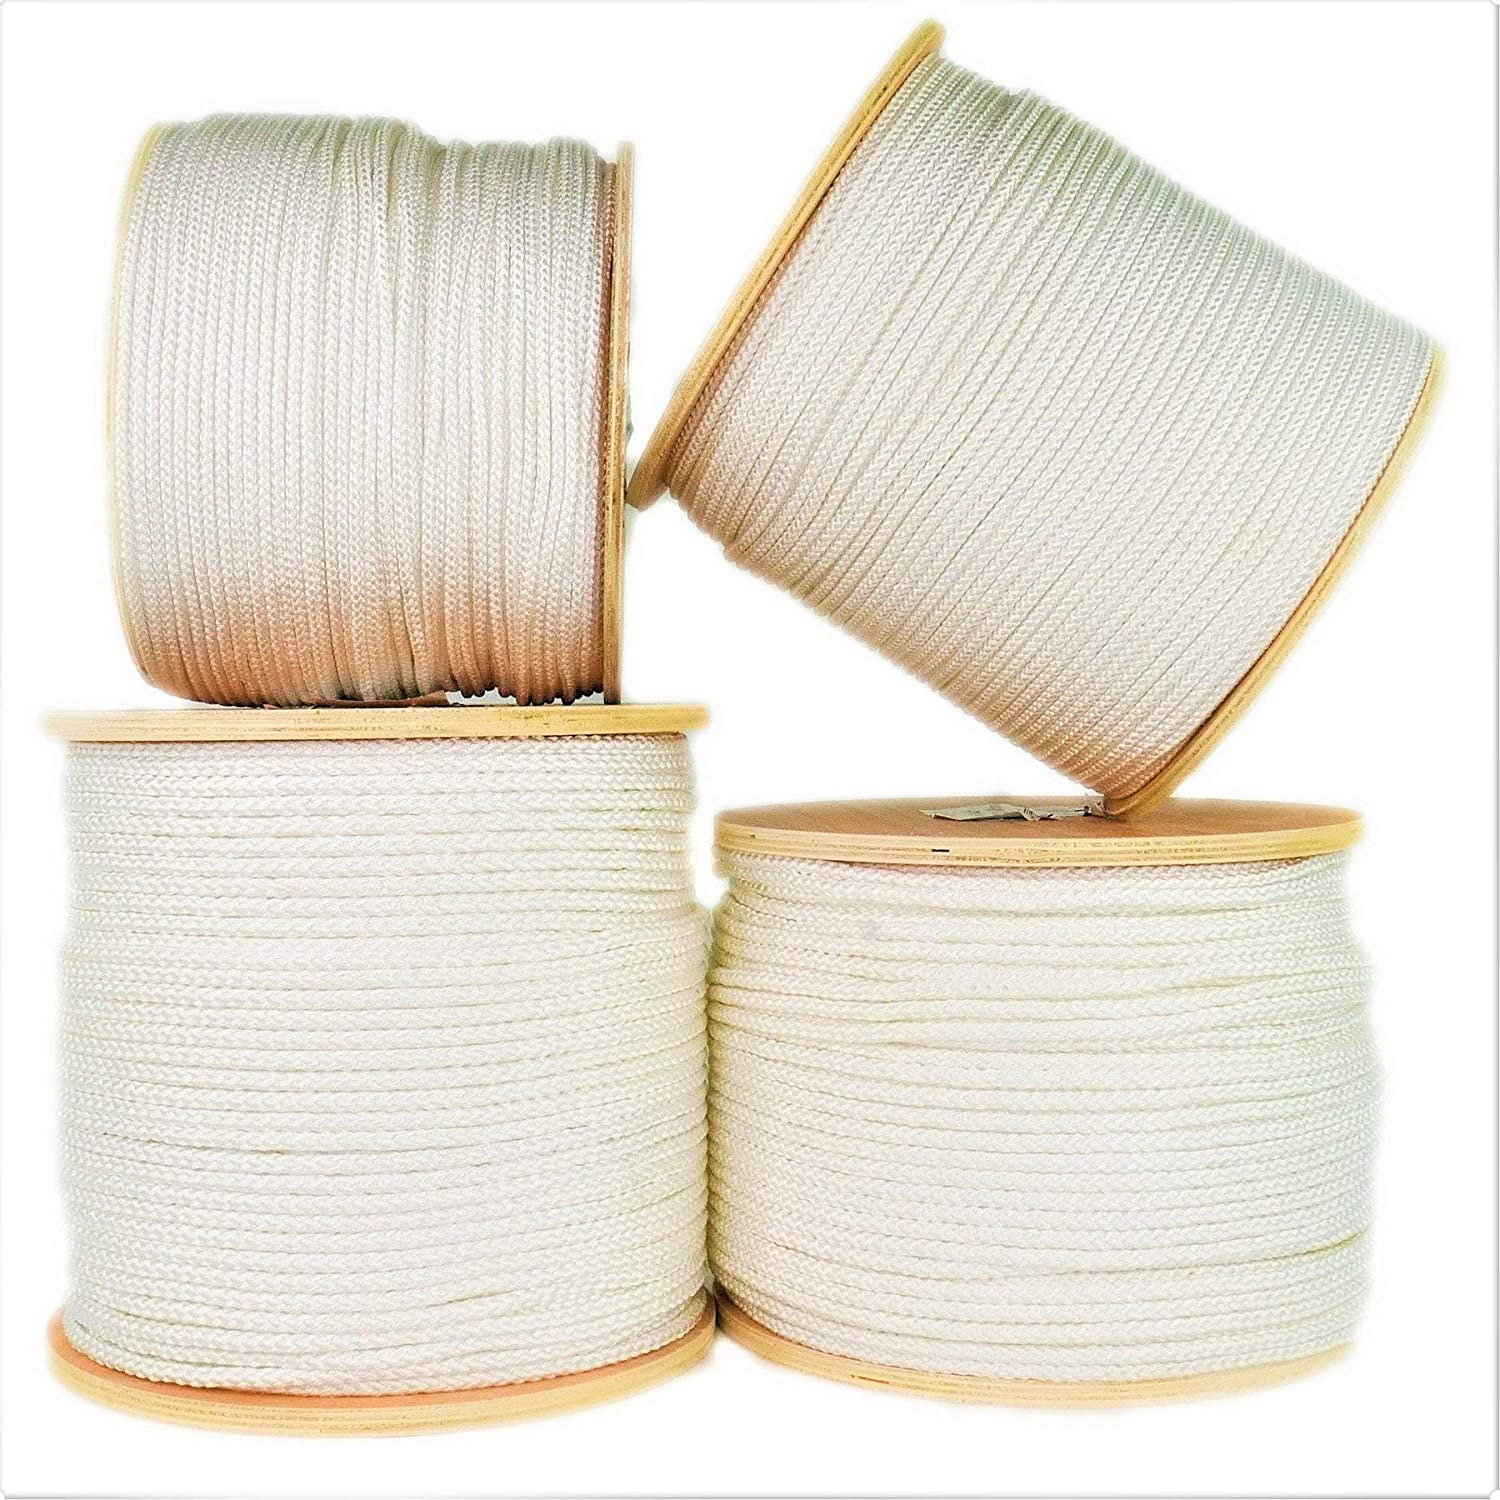 Abrasion Resistant 9//32 x 50ft Coil, White Diamond Braid Utility Cord with Parallel Core SGT KNOTS Crab Fishing Line